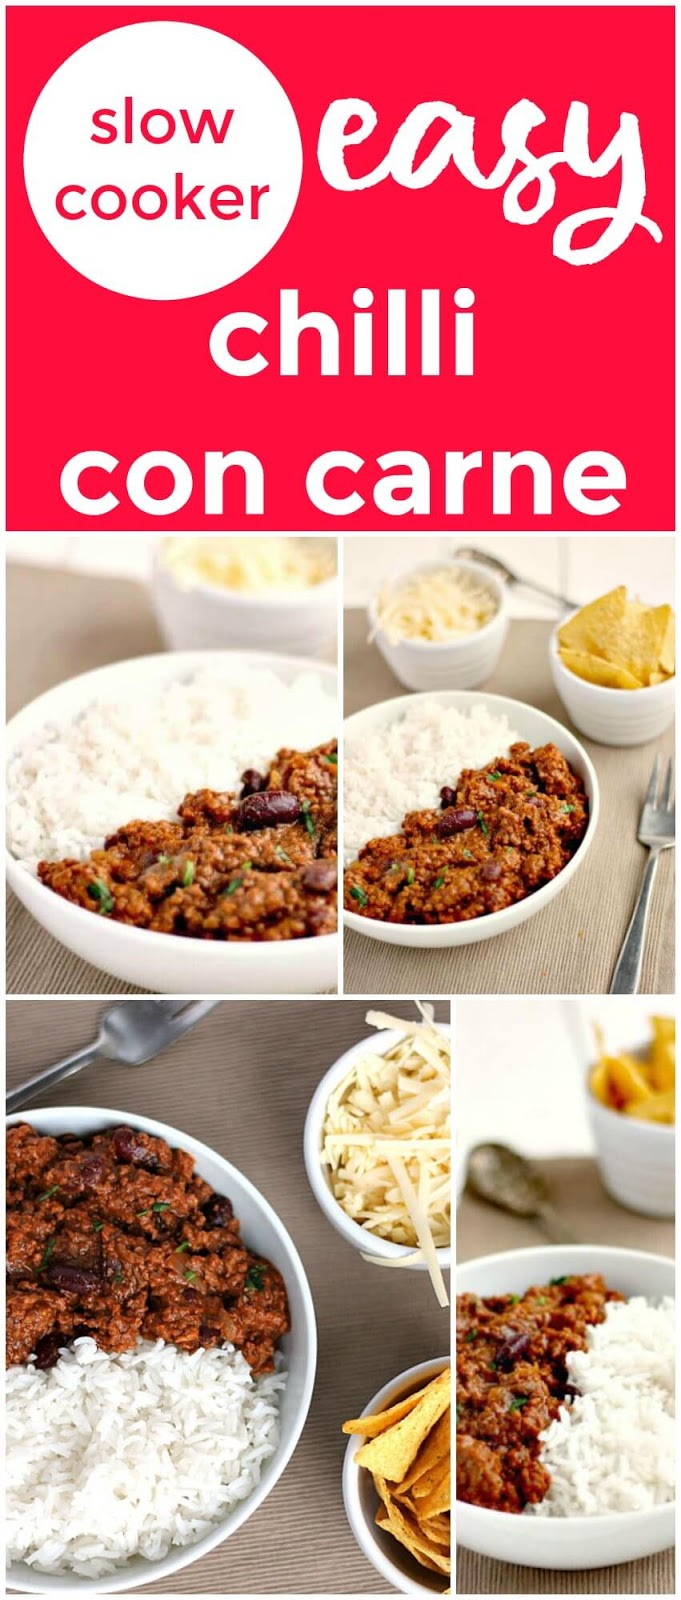 Easy slow cooker chilli